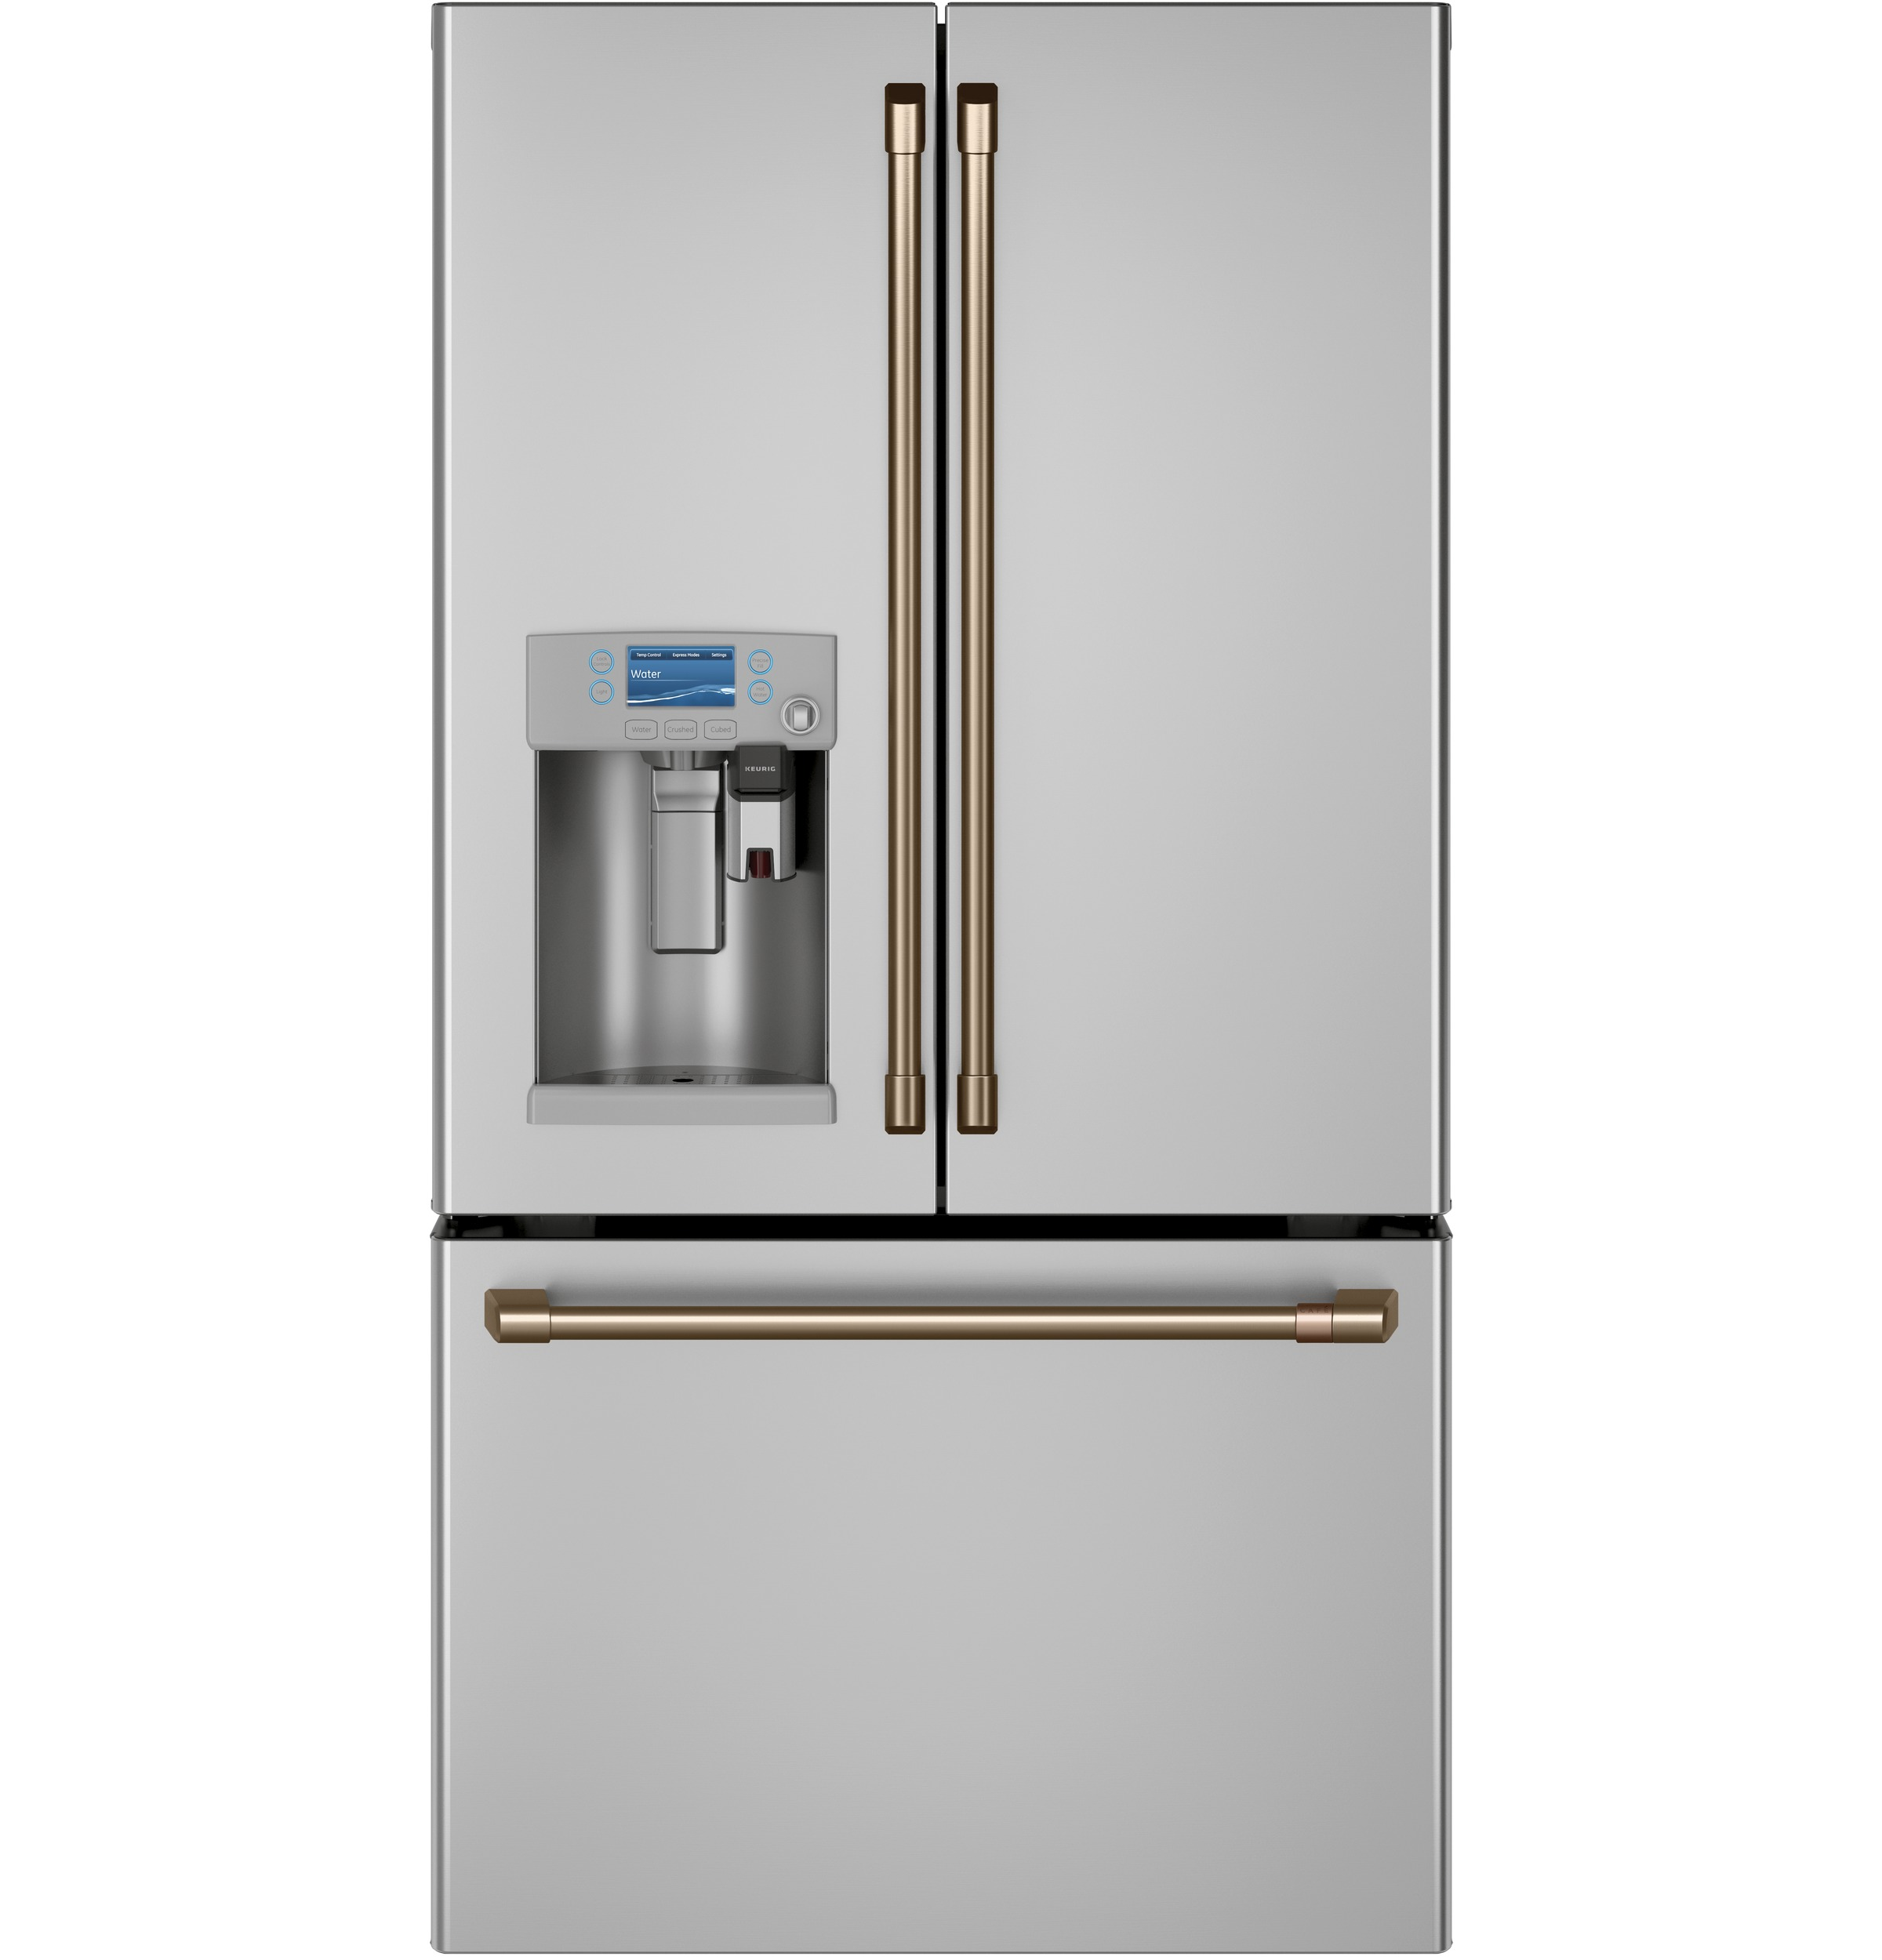 Model: CYE22UP2MS1 | Cafe Café™ ENERGY STAR® 22.1 Cu. Ft. Smart Counter-Depth French-Door Refrigerator with Keurig® K-Cup® Brewing System